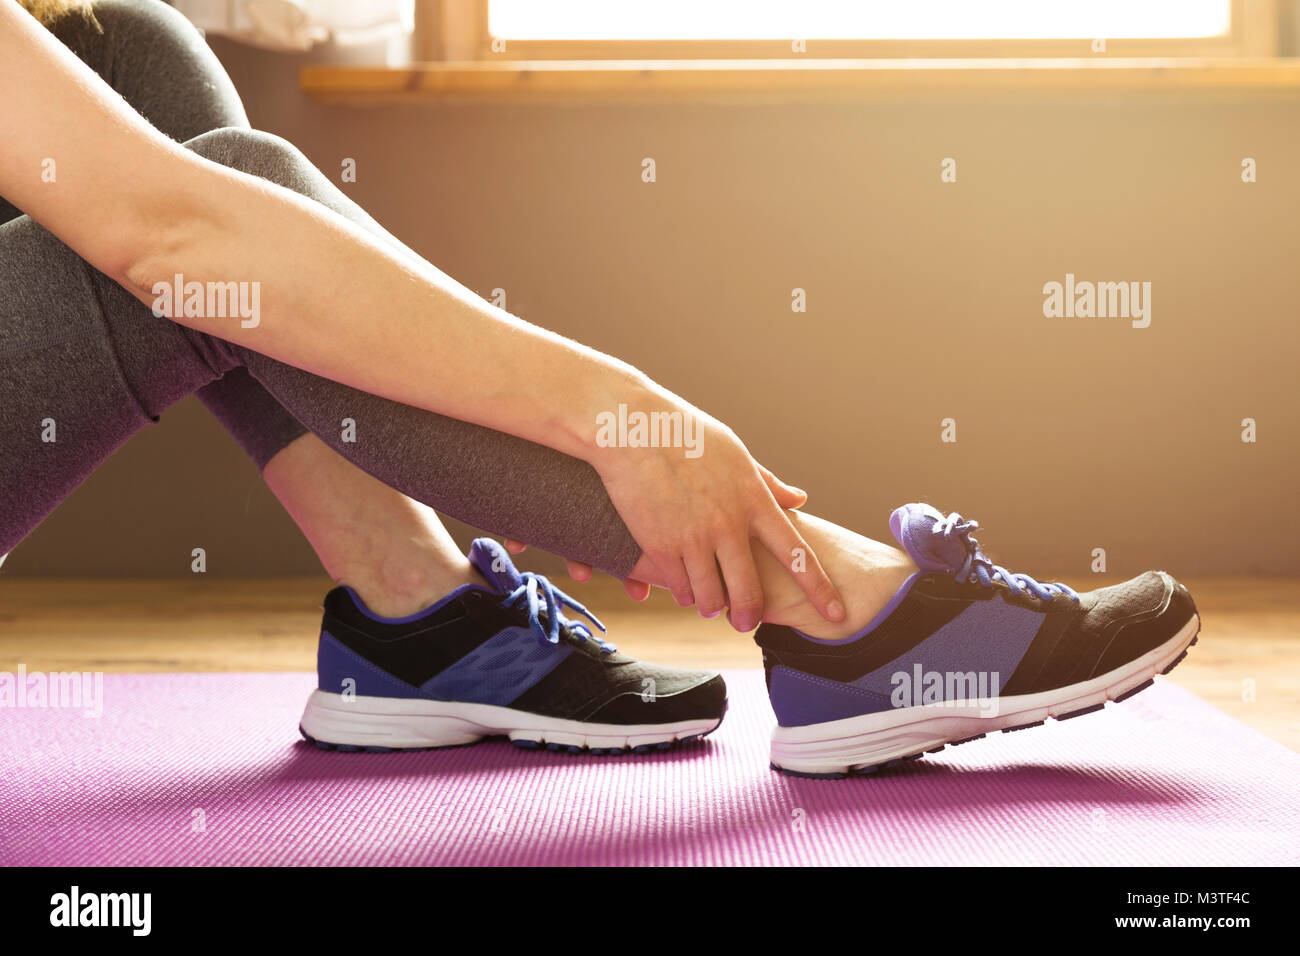 Young woman suffering from an ankle injury while exercising. Sport exercise injuries concept. Stock Photo